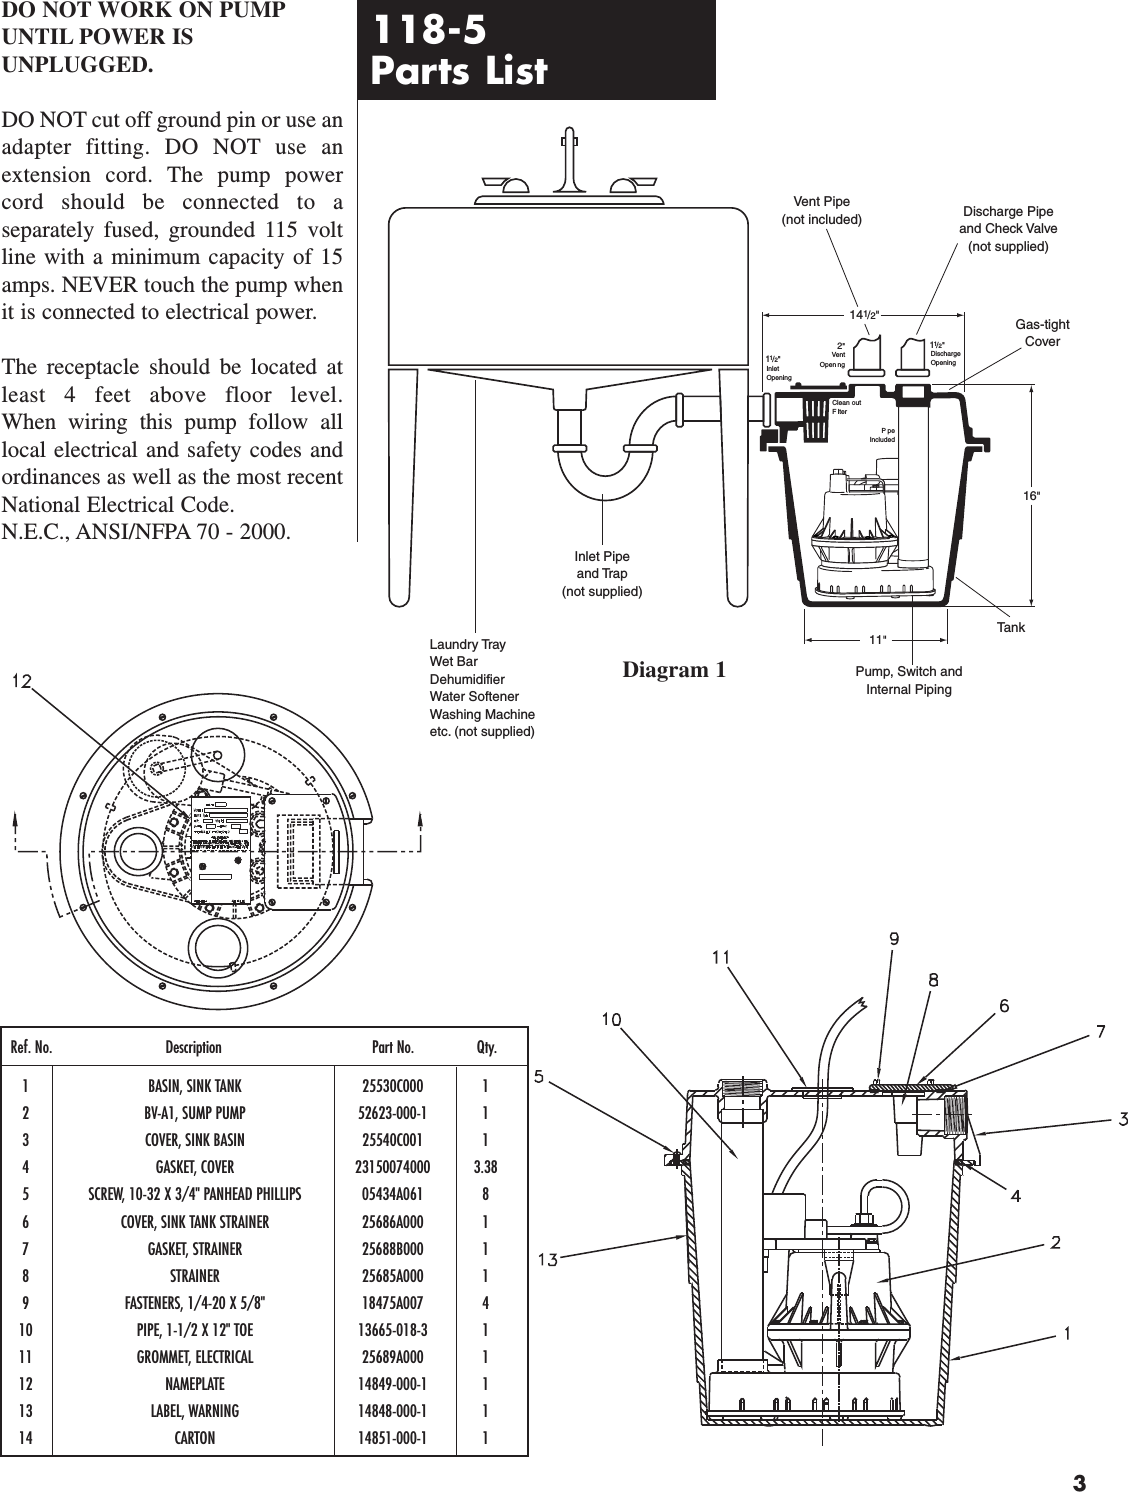 138760 3 Hydromatic 118 5 System Owners Manual Pump Cycle Electrics Panhead Wiring Diagram Page Of 4